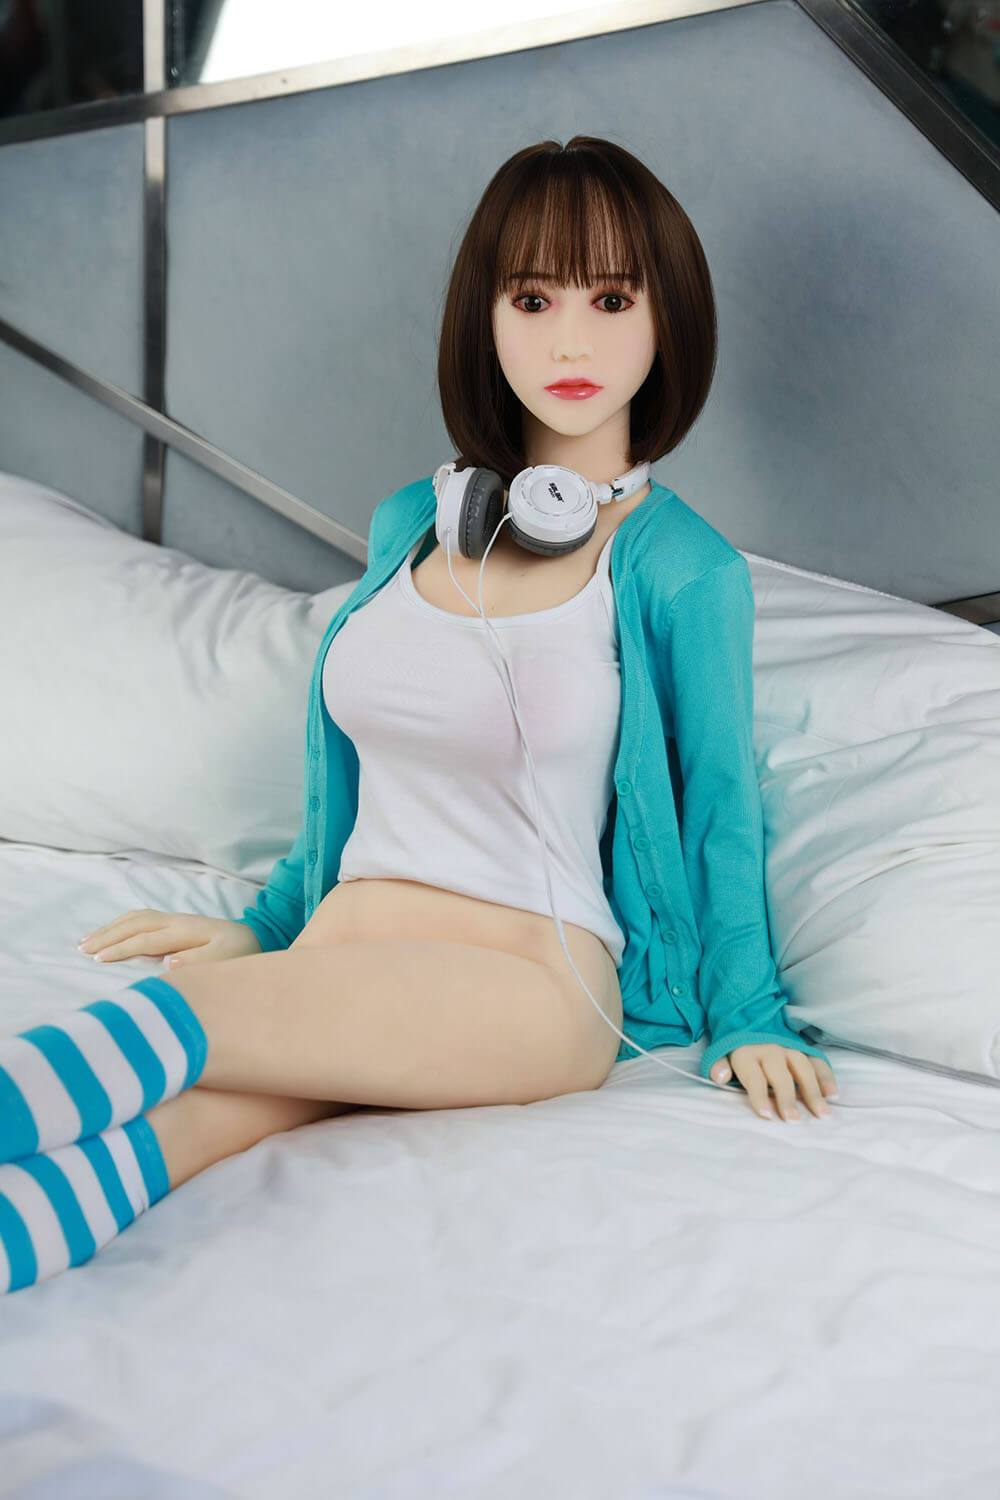 140cm 4.59ft Lifelike Sex Doll With 3 Entries C Cup Adult Real Love Doll Janey-sexdollslab.com